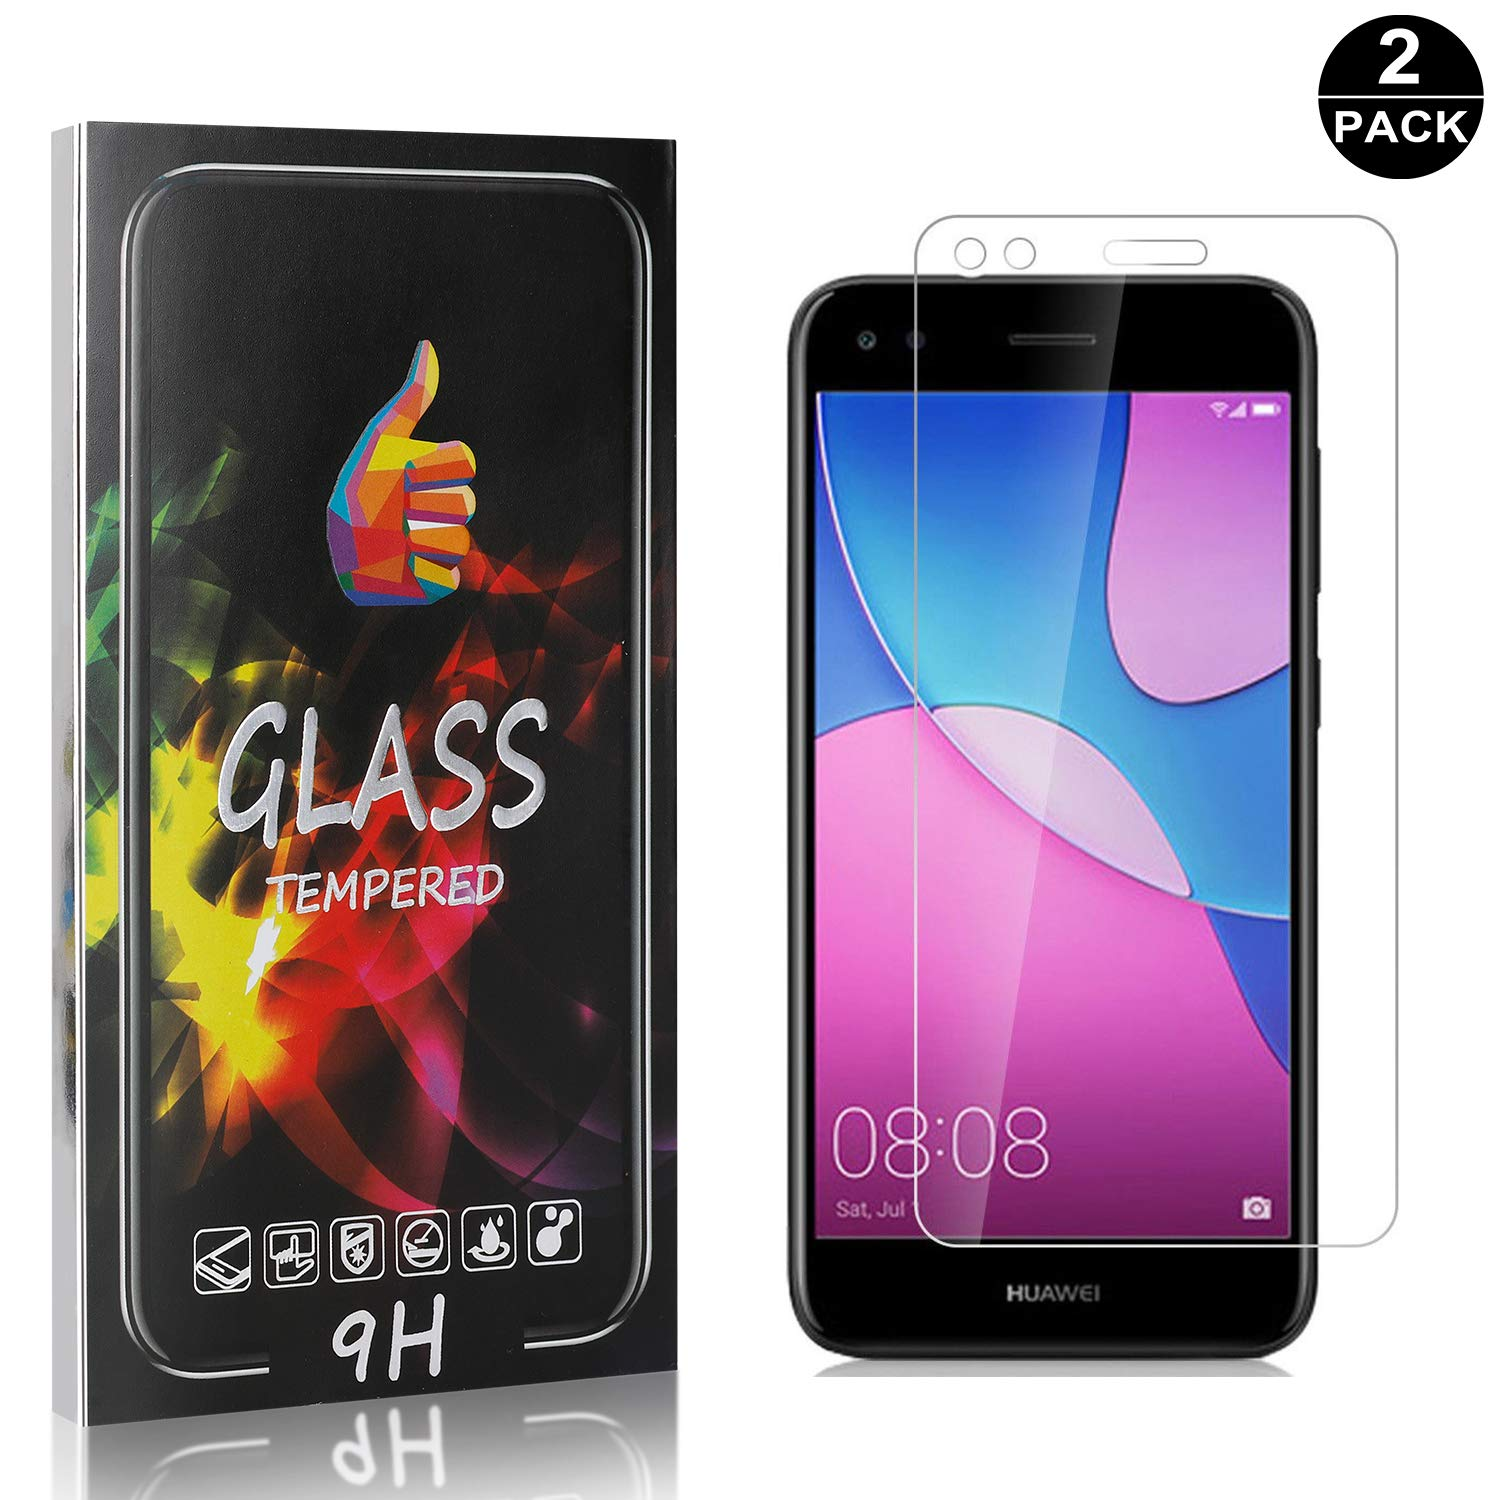 2-Pack Anti Scratch Bubble Free Screen Protector UNEXTATI Screen Protector for Huawei P9 Lite Mini Tempered Glass Screen Protector